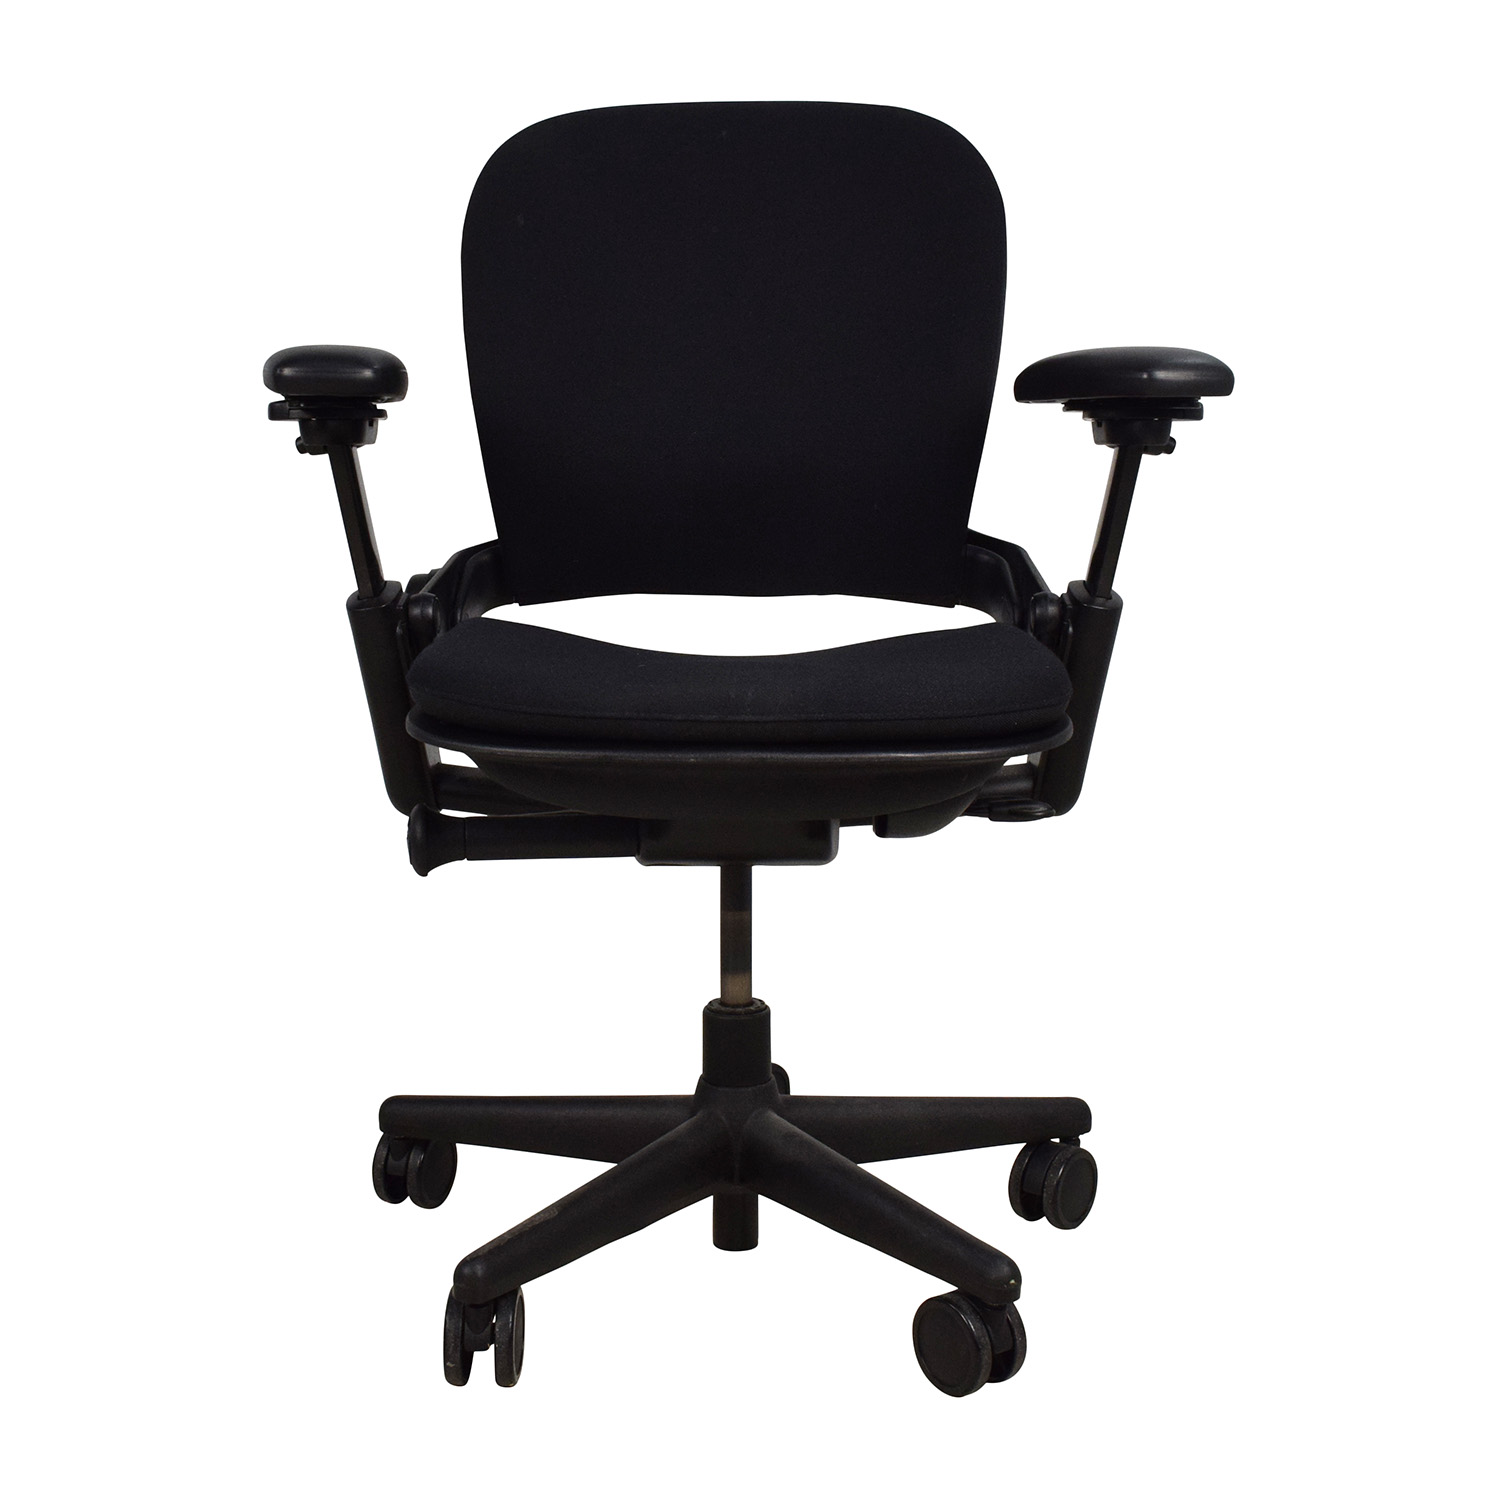 Adjustable Black Office Desk Chair coupon